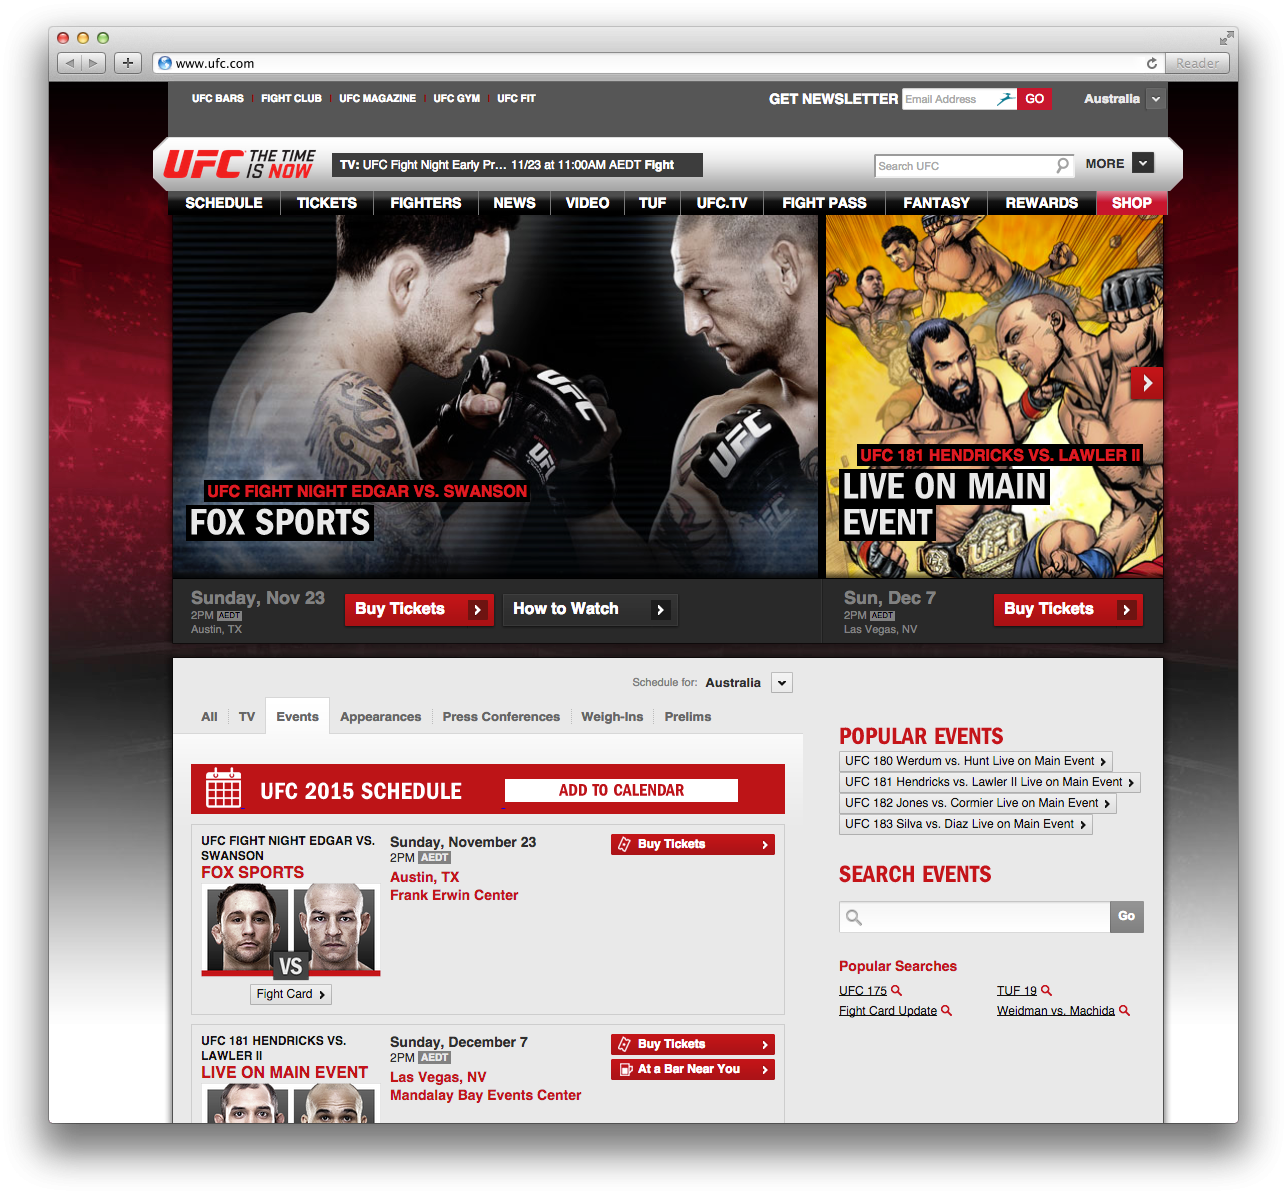 Add to calendar button and banneron the UFC schedule  page